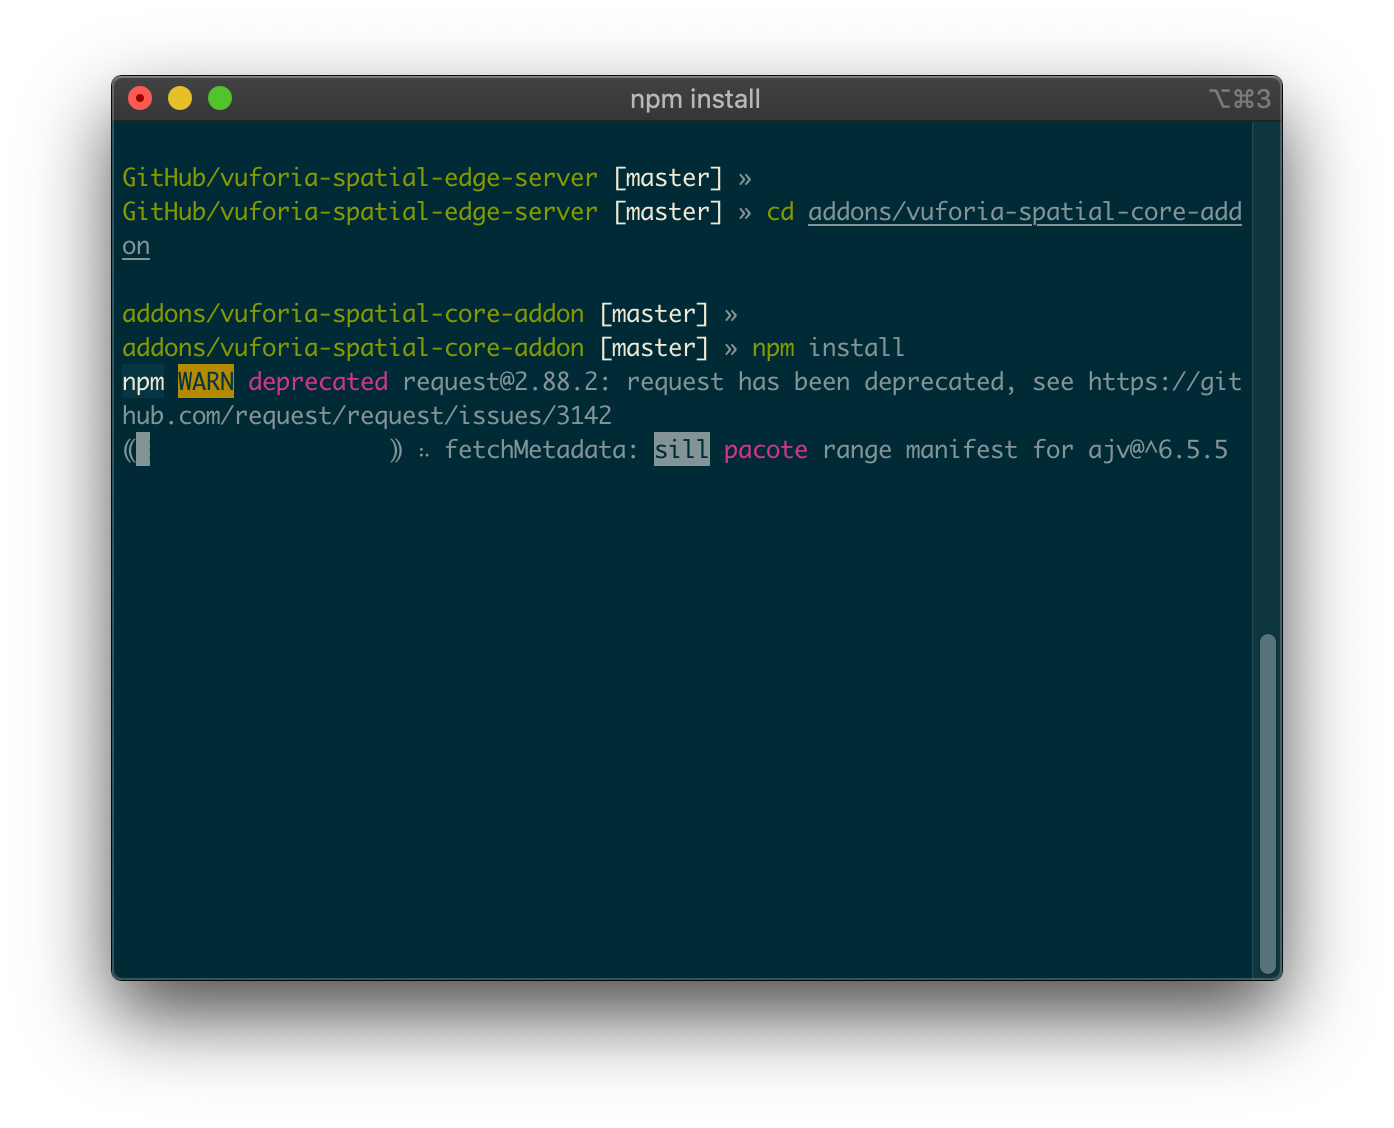 Terminal containing cd into addons directory then npm install